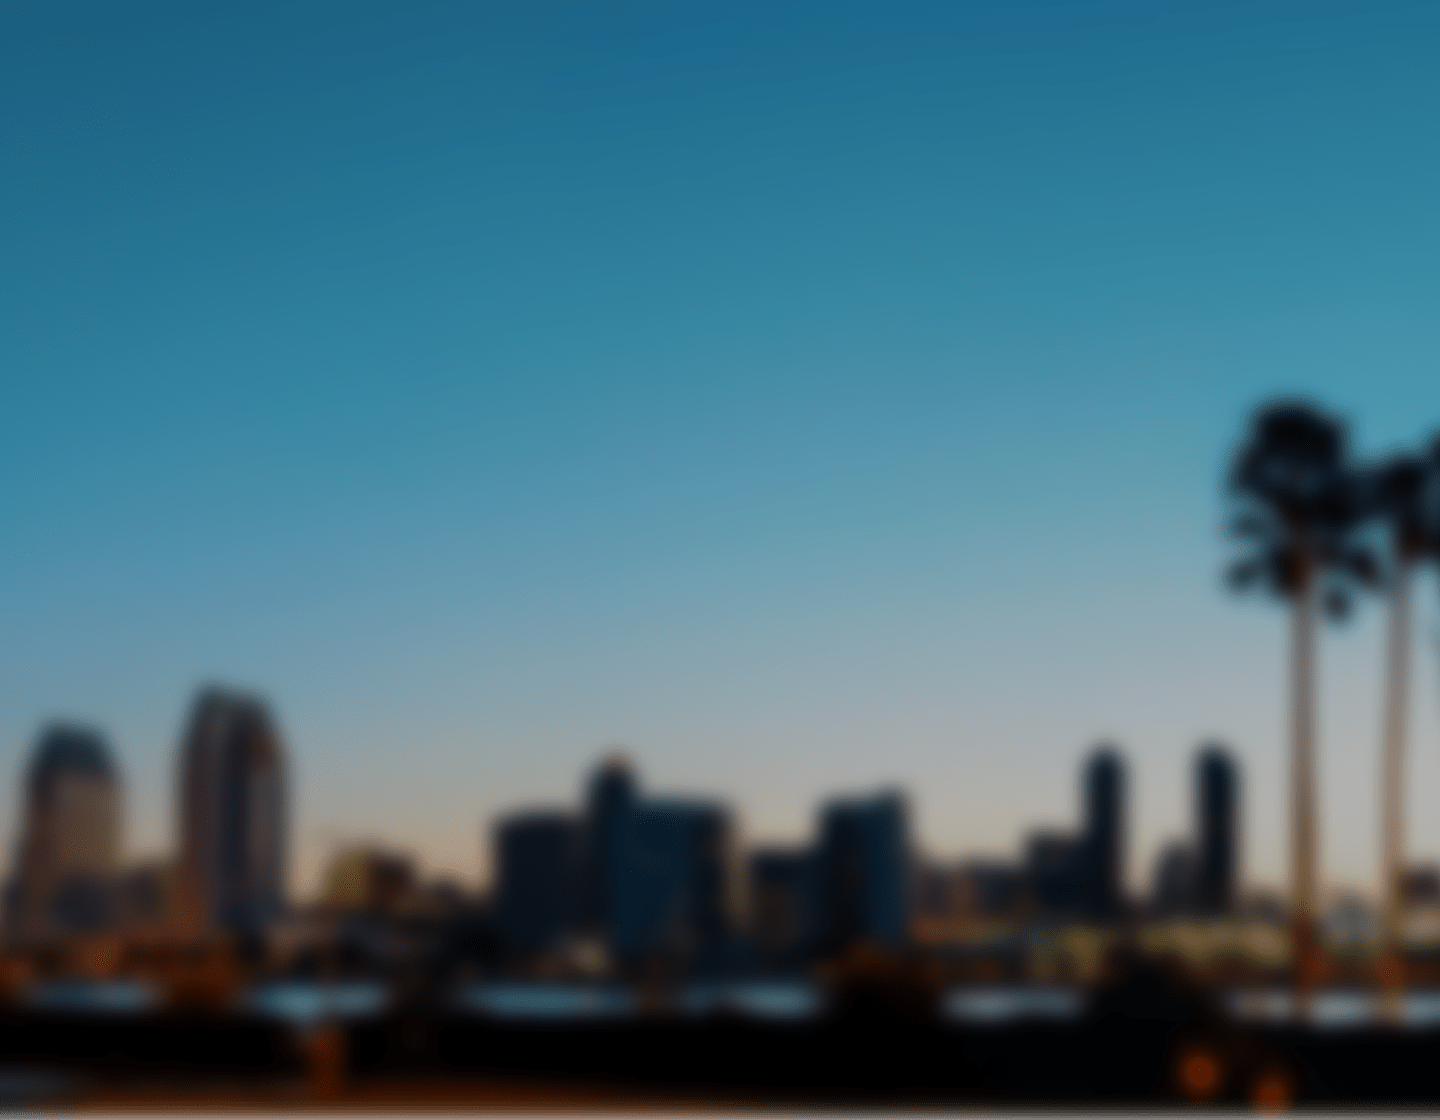 Out of focus photo of a city skyline